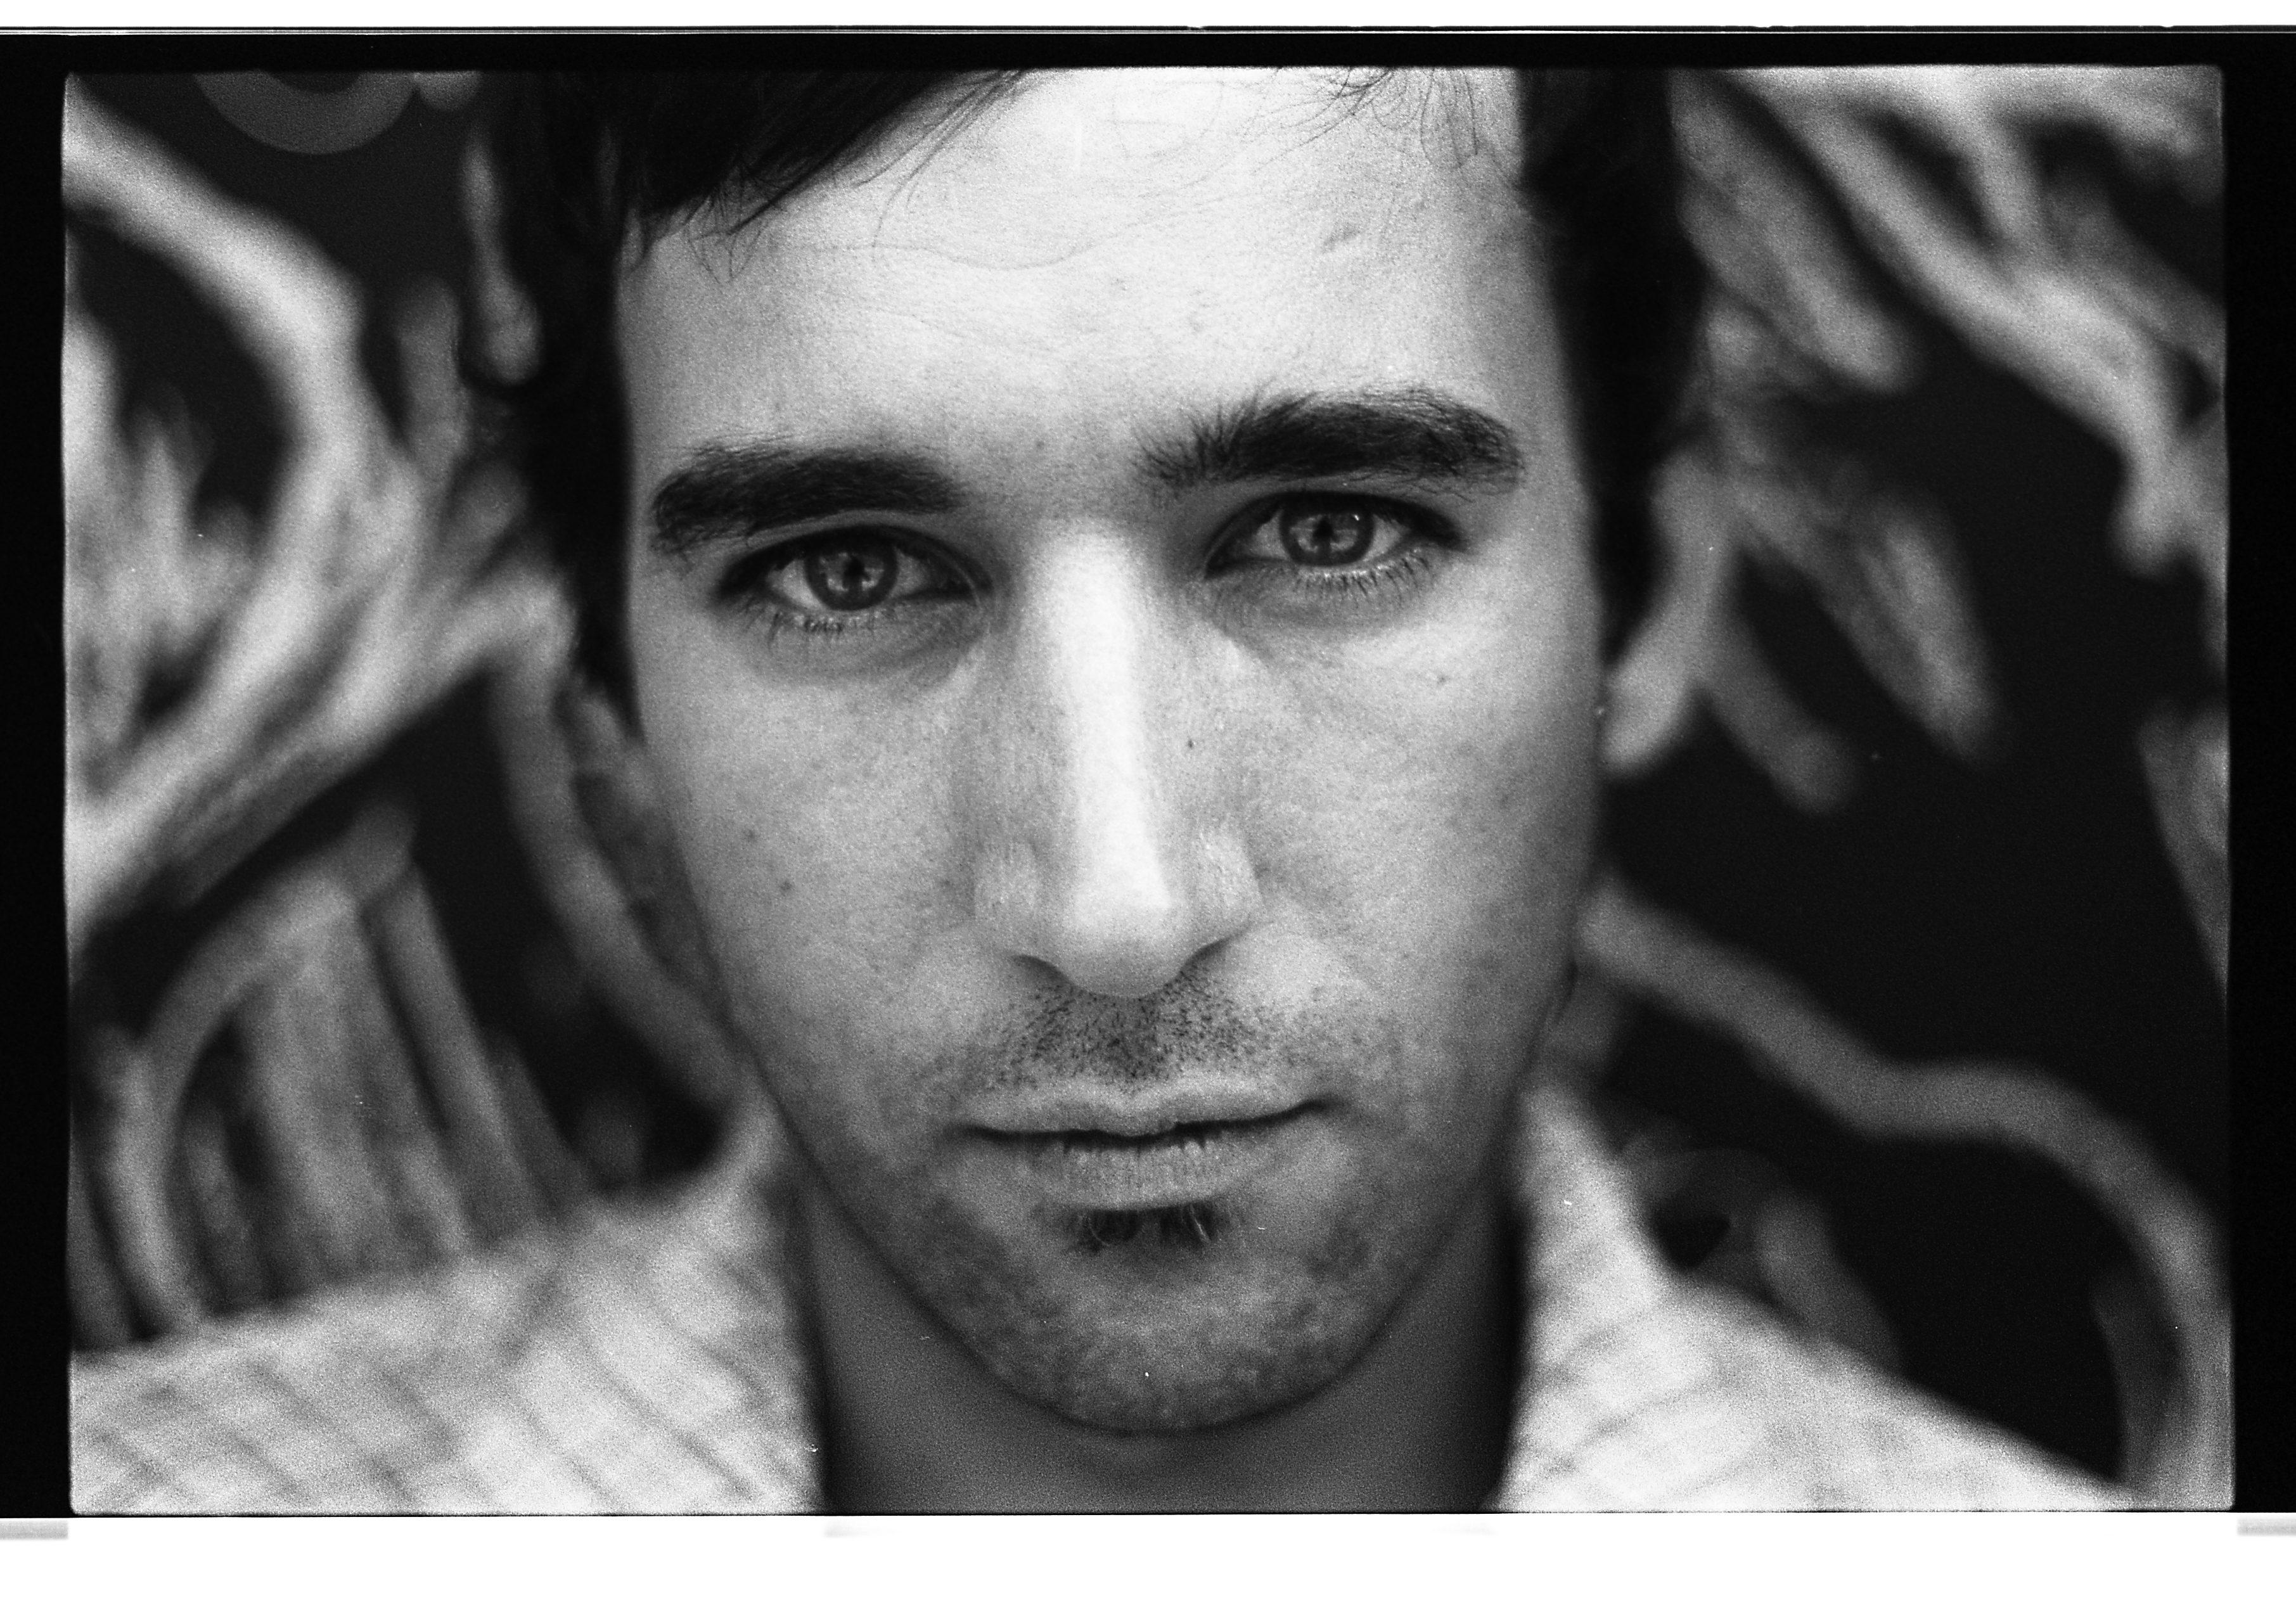 https://i1.wp.com/asthmatickitty.com/images/sufjanstevens/sufjan_stevens_-_photo_credit_marzuki_stevens_-_27.jpg